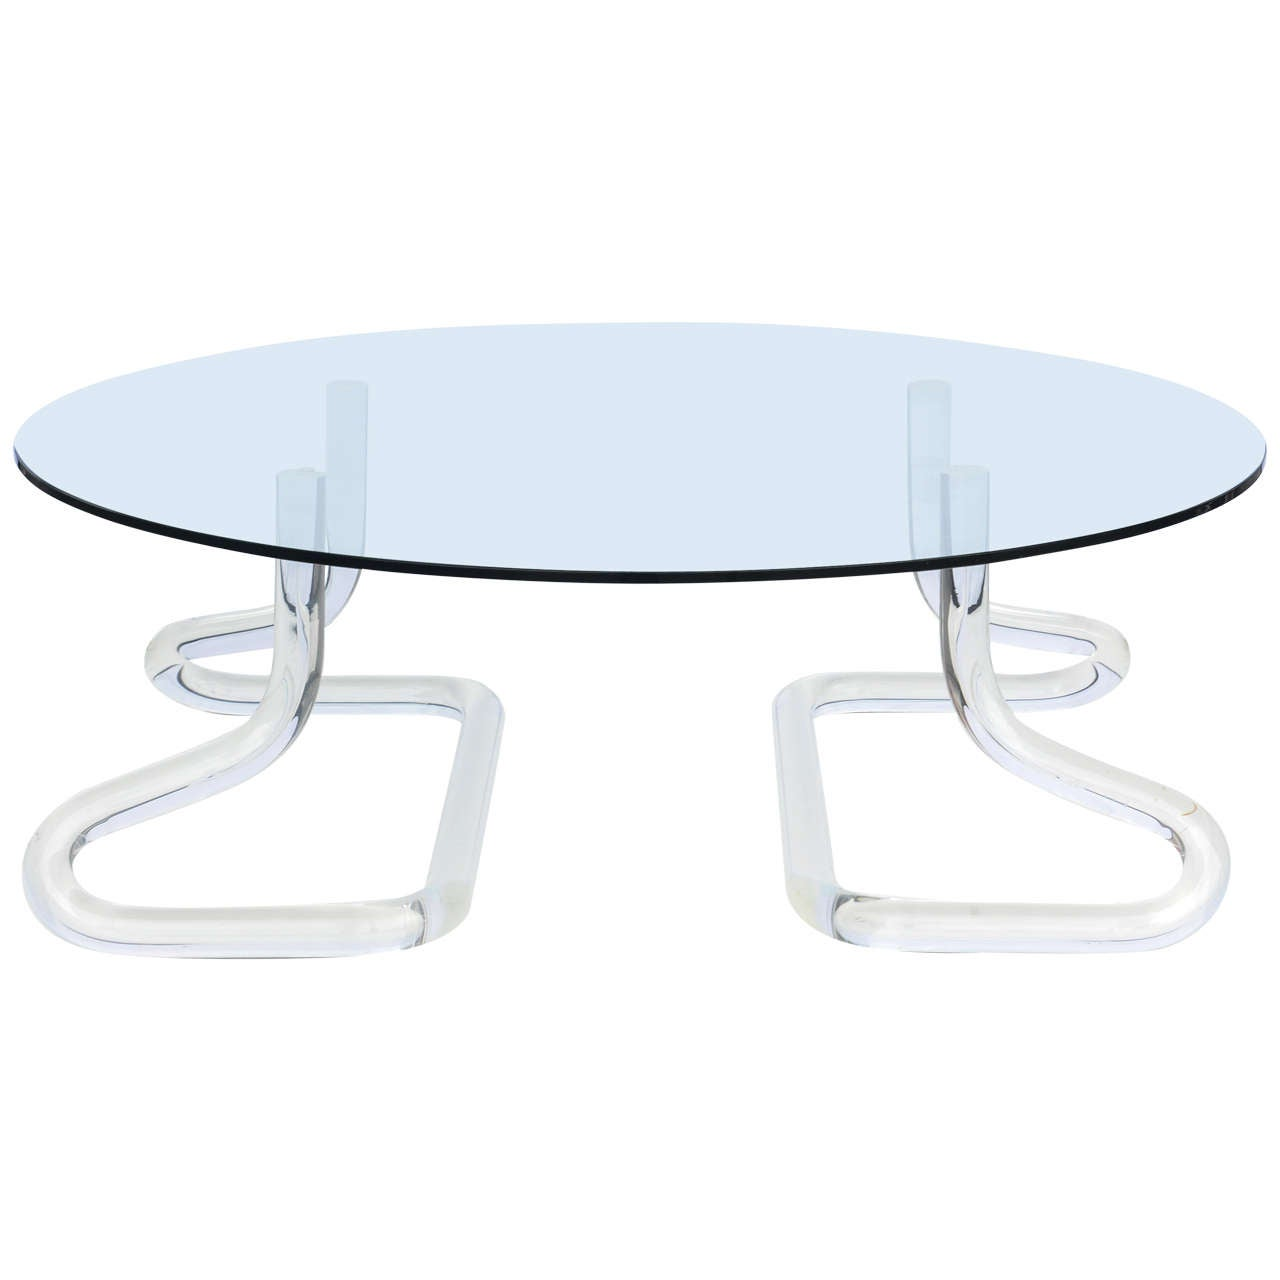 Jeff Messerschmidt 1972, 2000 Series Pipeline Lucite Coffee Table 1